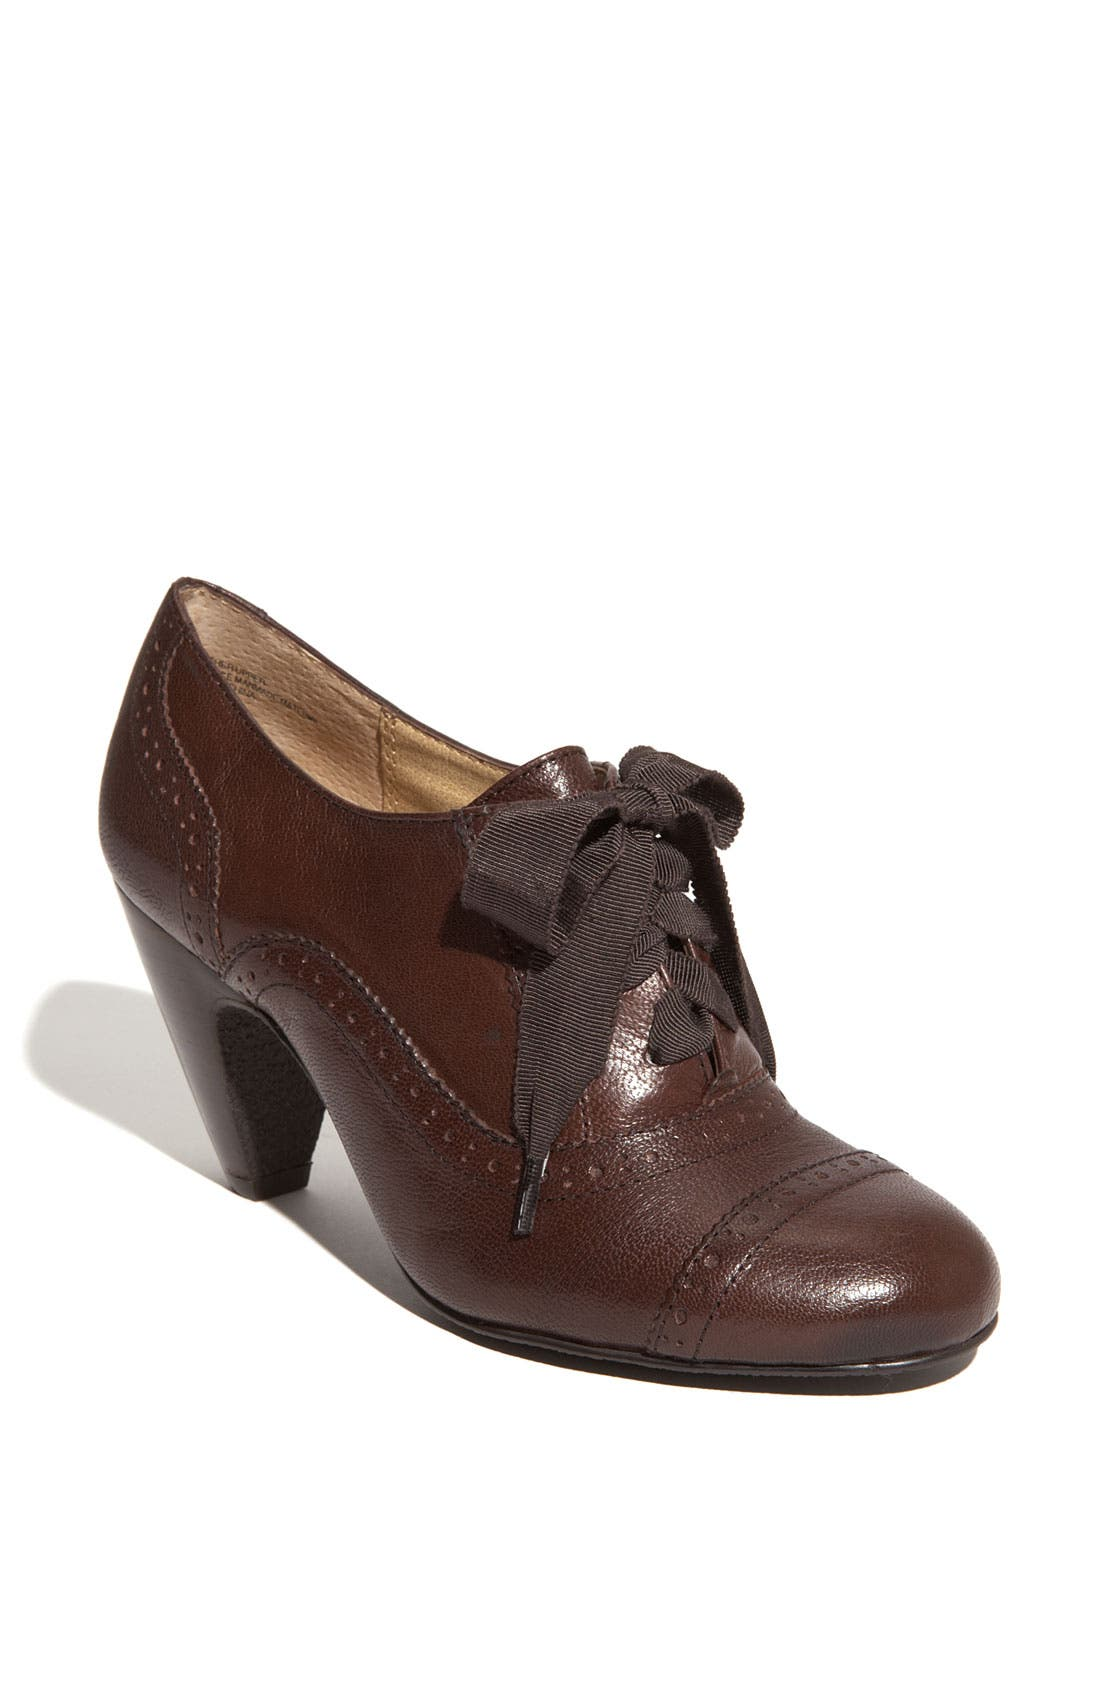 Alternate Image 1 Selected - BP. 'Hightower Oxford' Pump